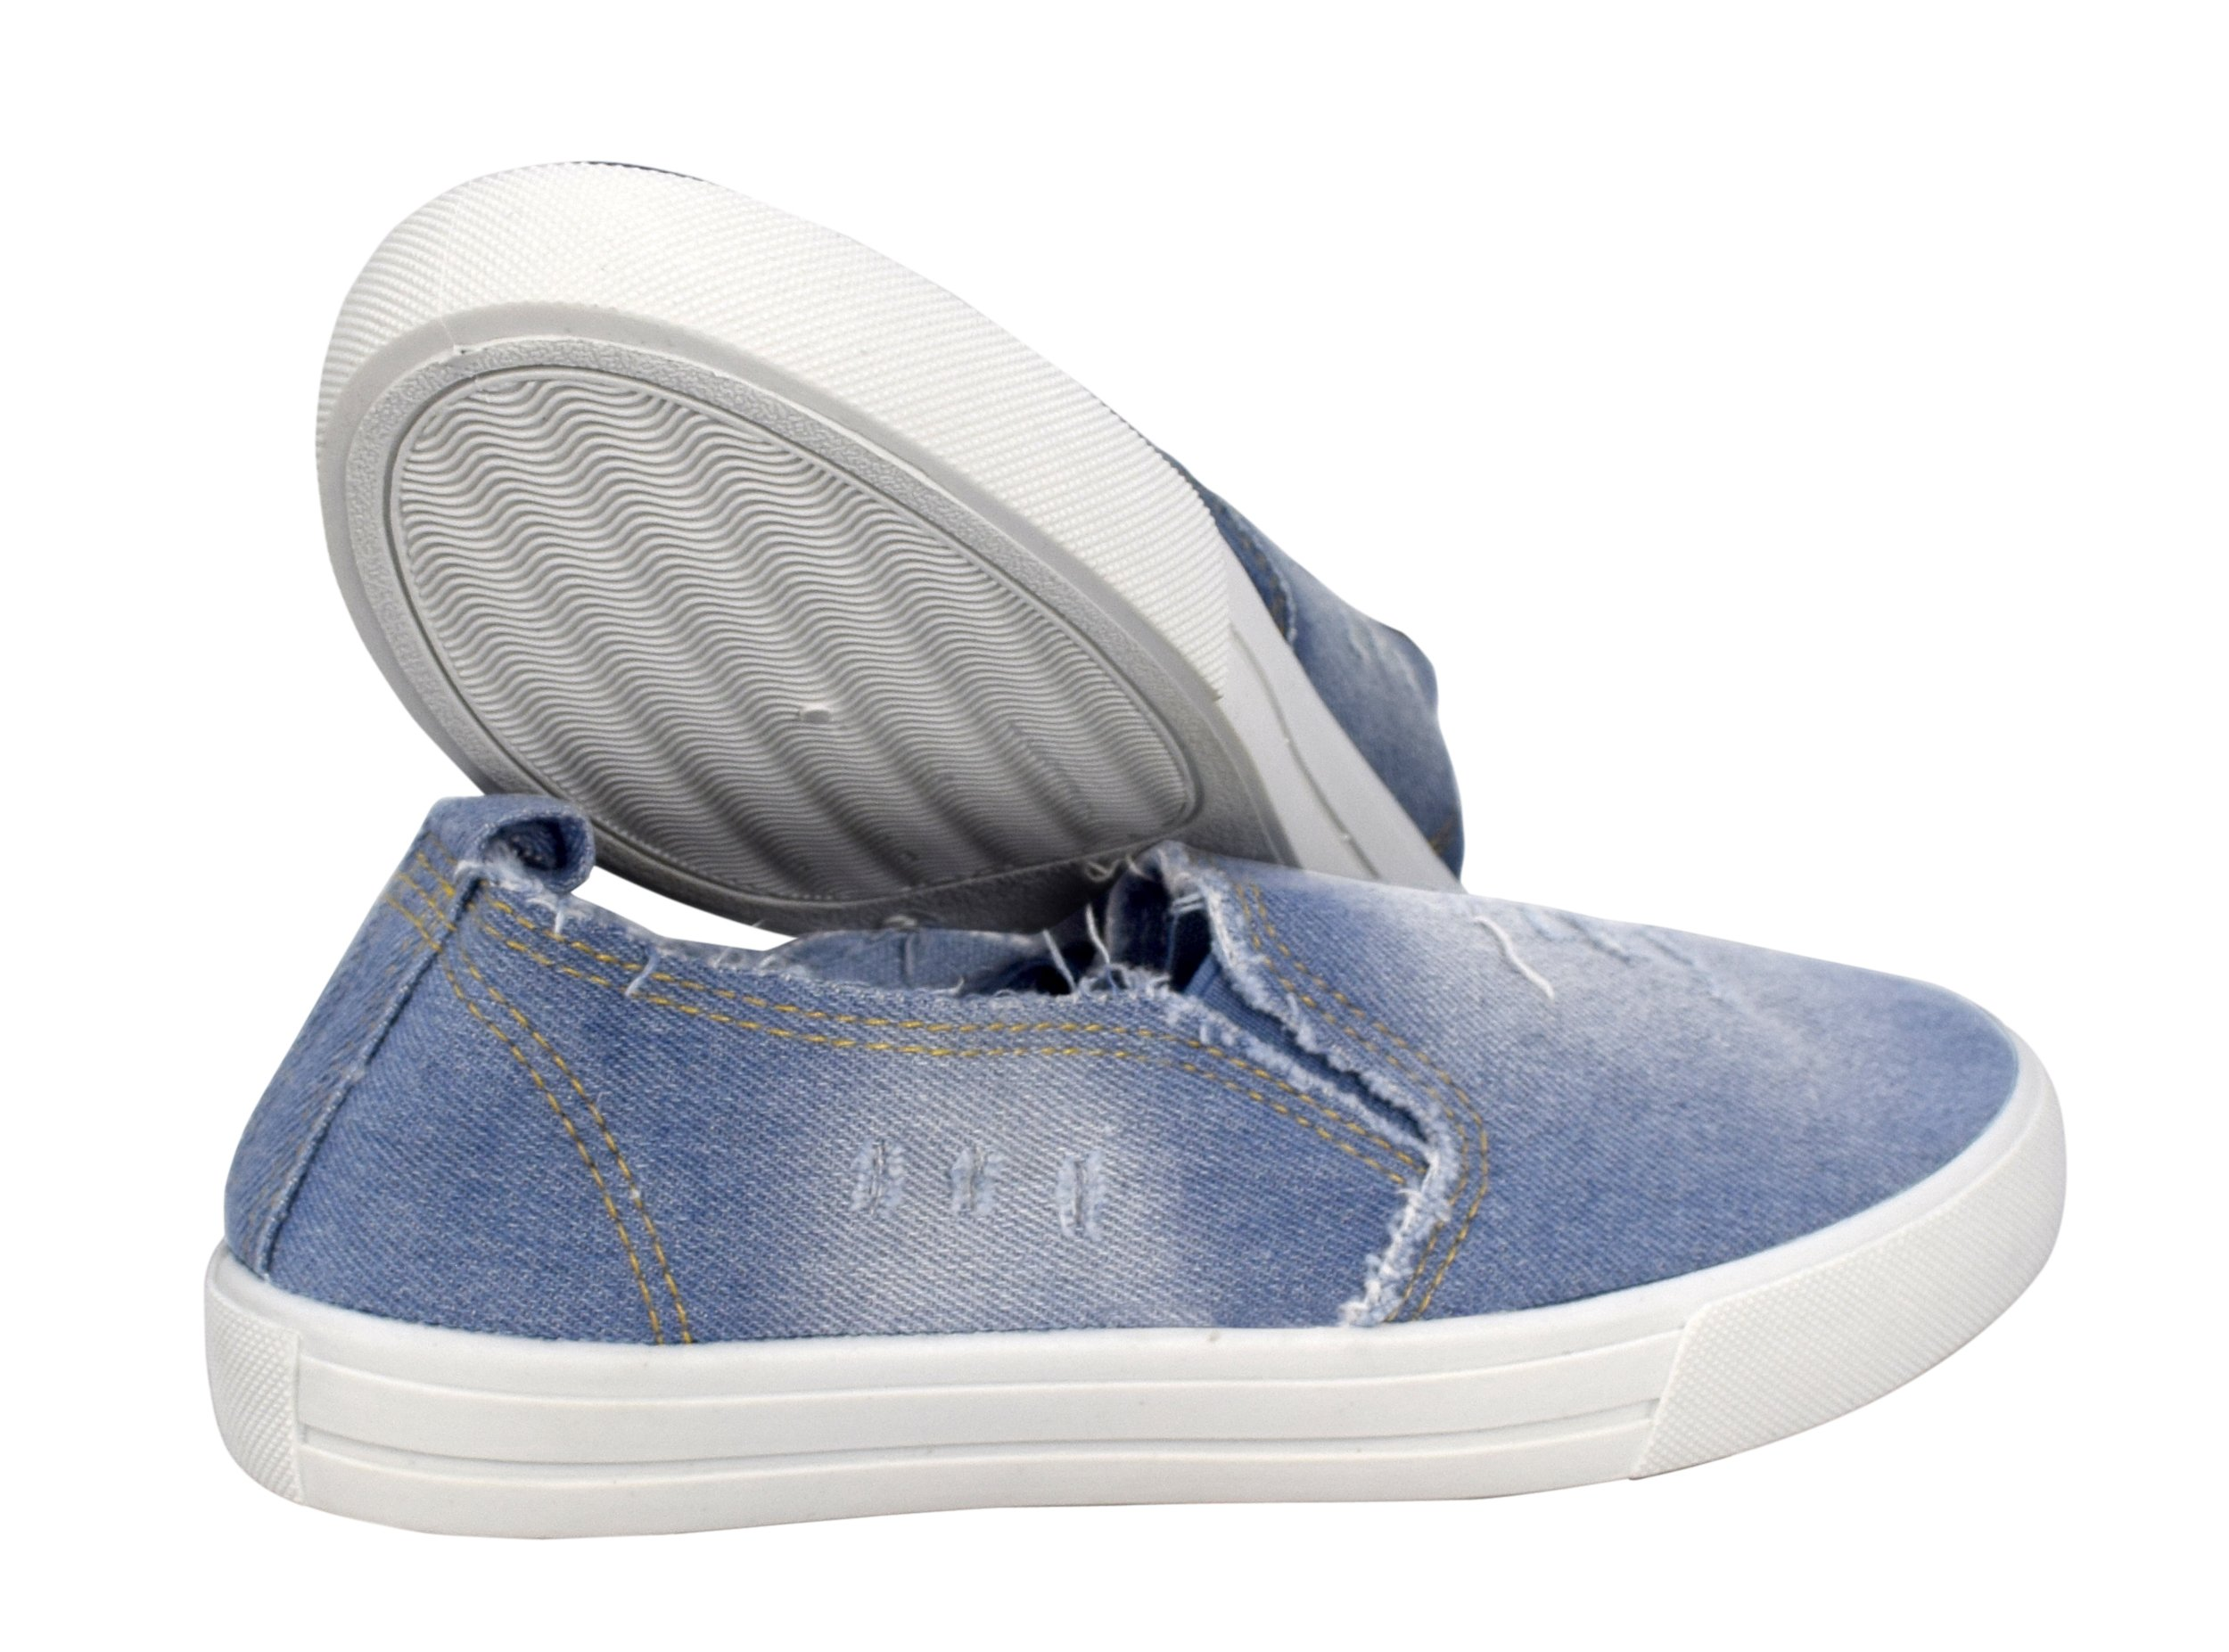 Peach Couture Womens Fashion Distressed Denim Casual Shoes Slip On Sneakers (L Blue 8) by Peach Couture (Image #3)